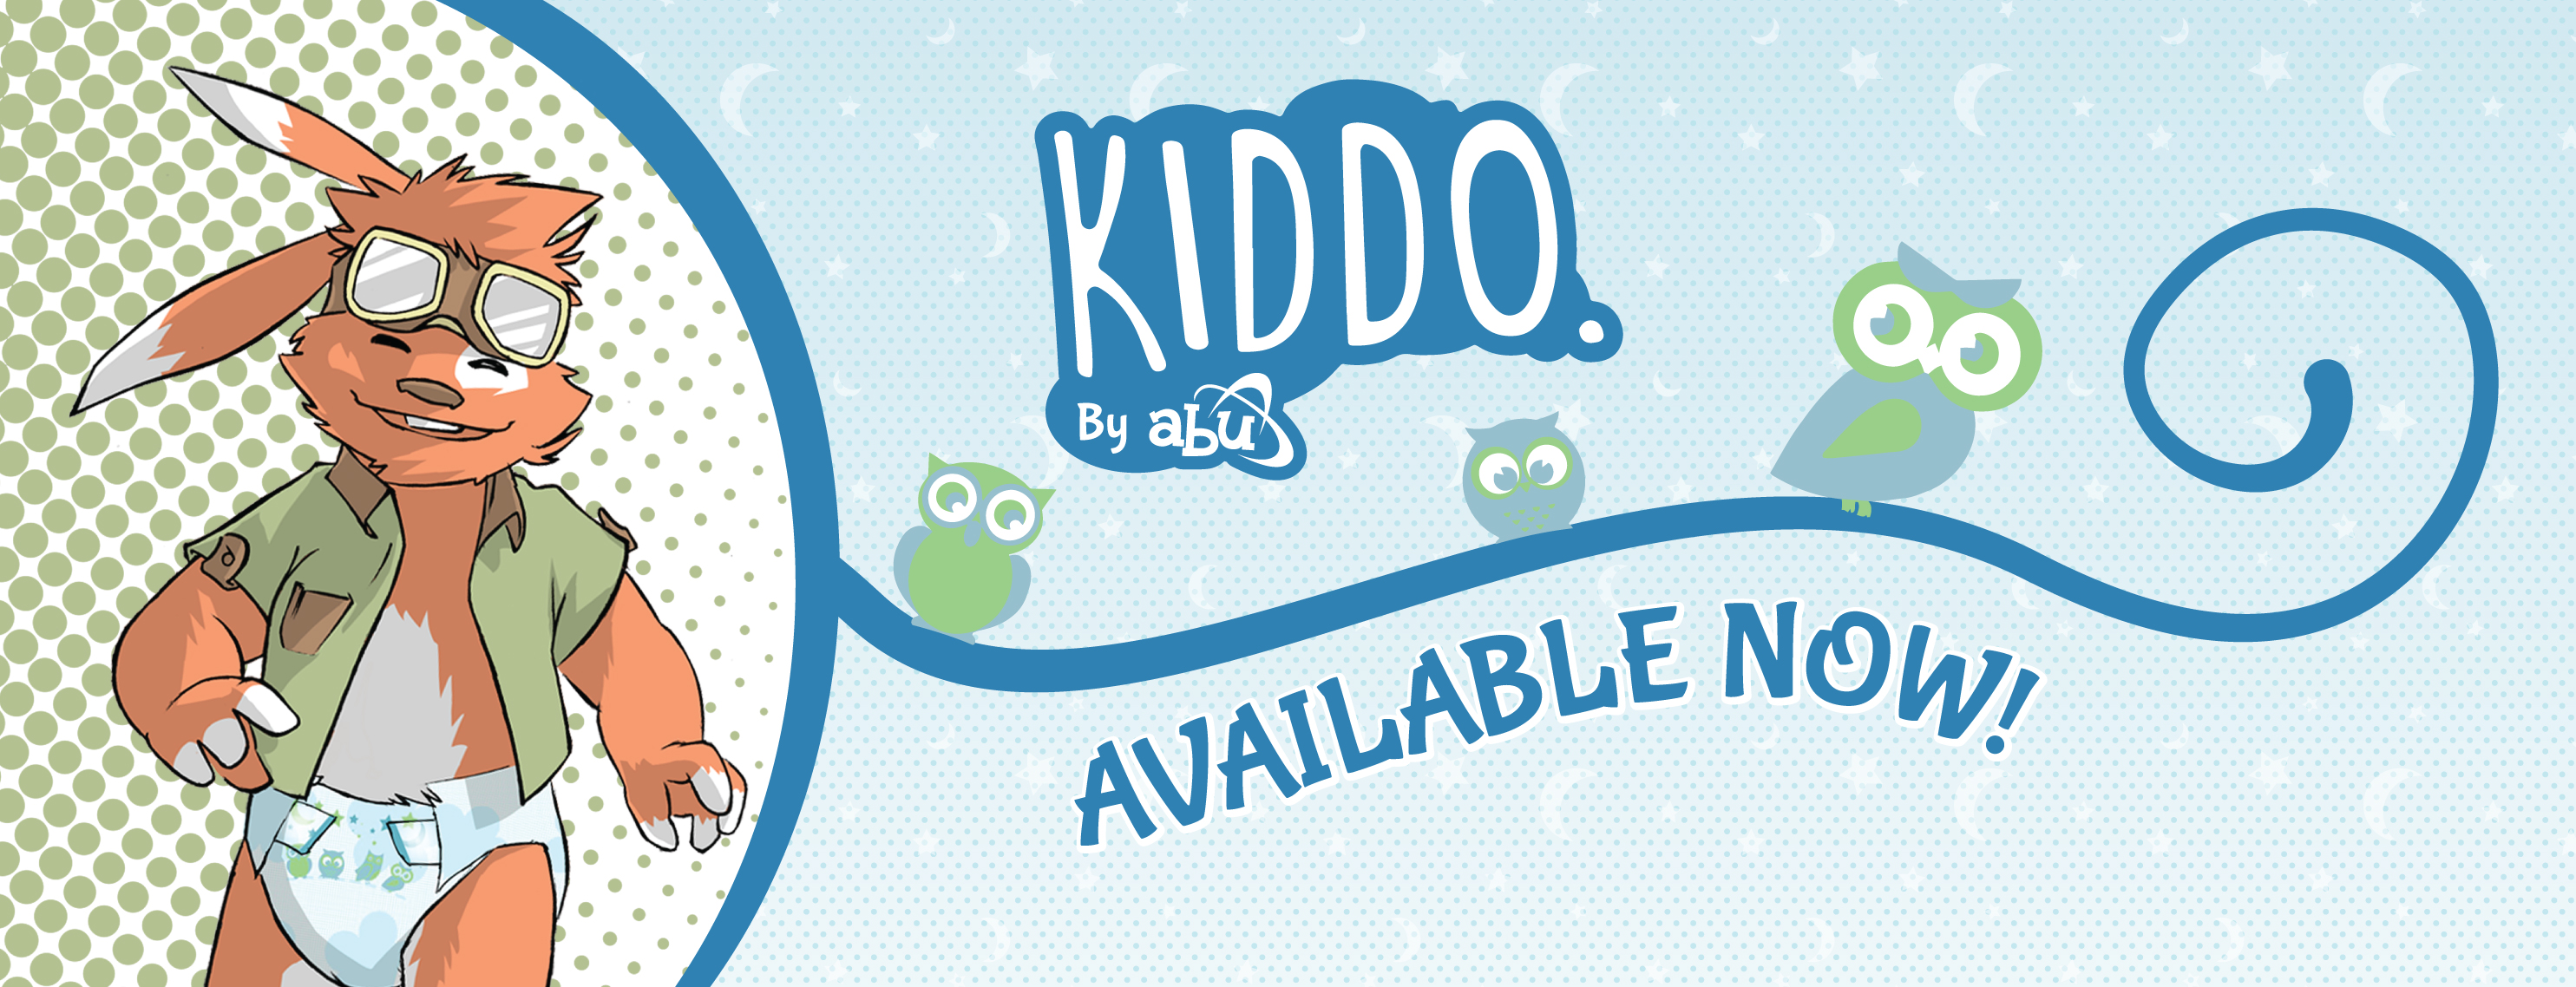 kiddo_website_banner.jpg